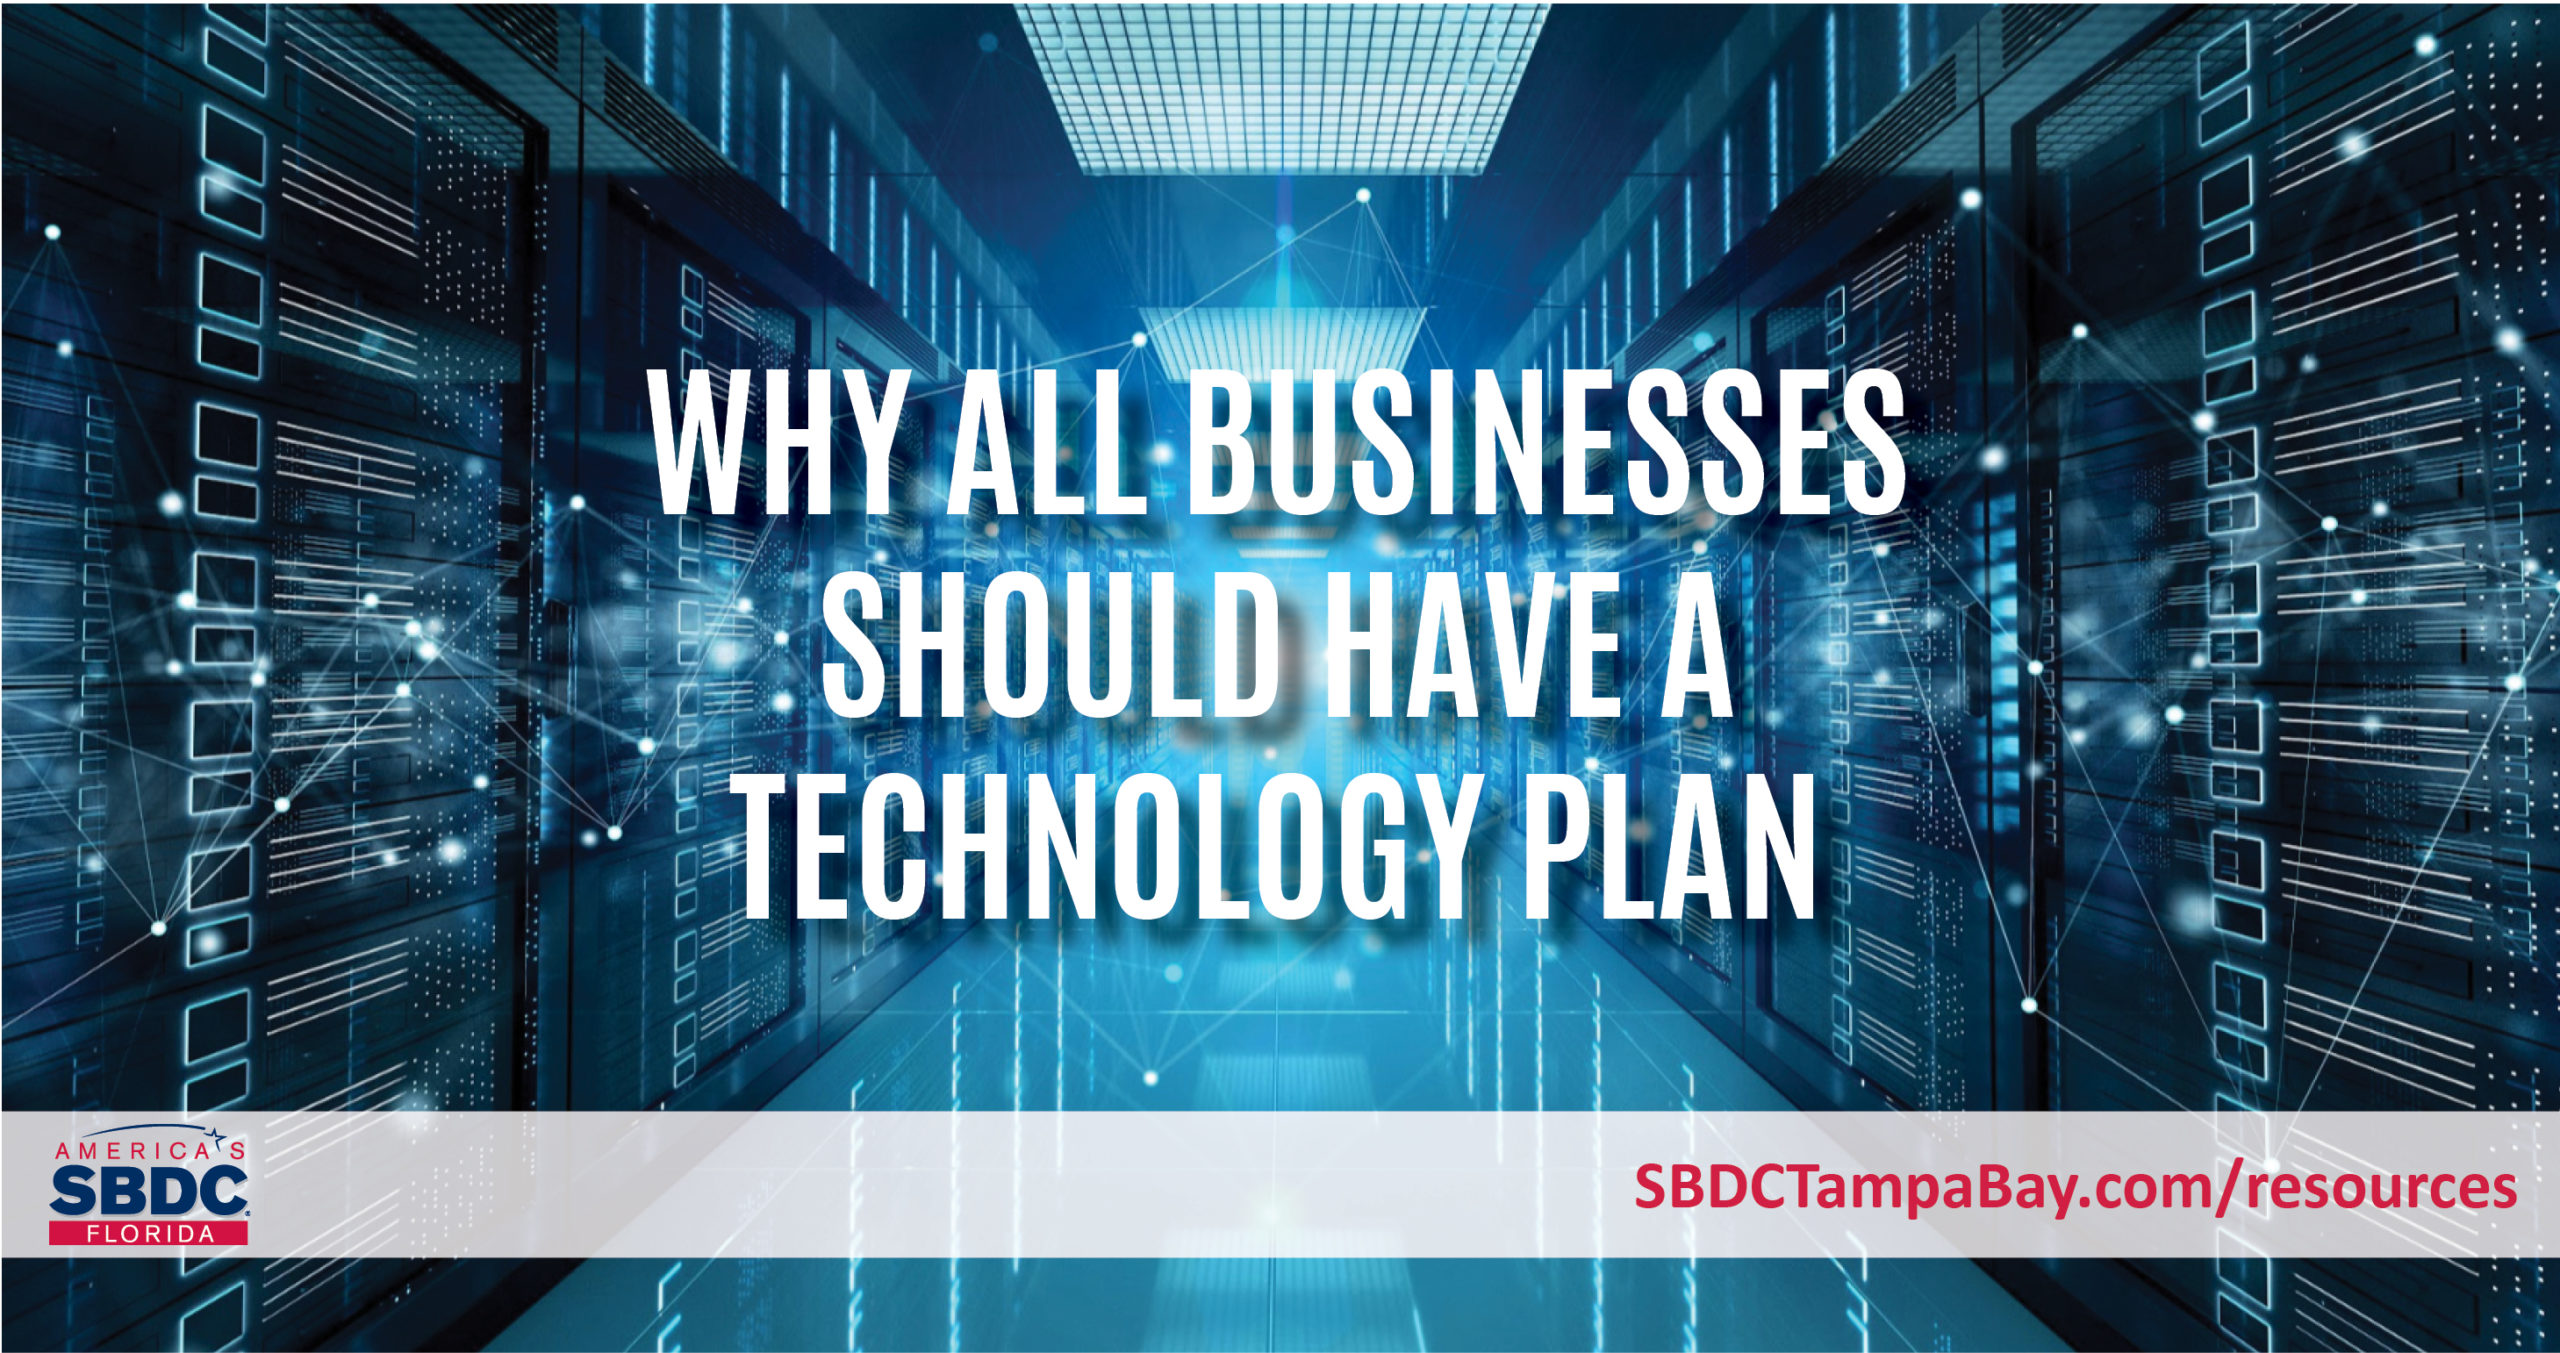 Why All Businesses Should Have a Technology Plan